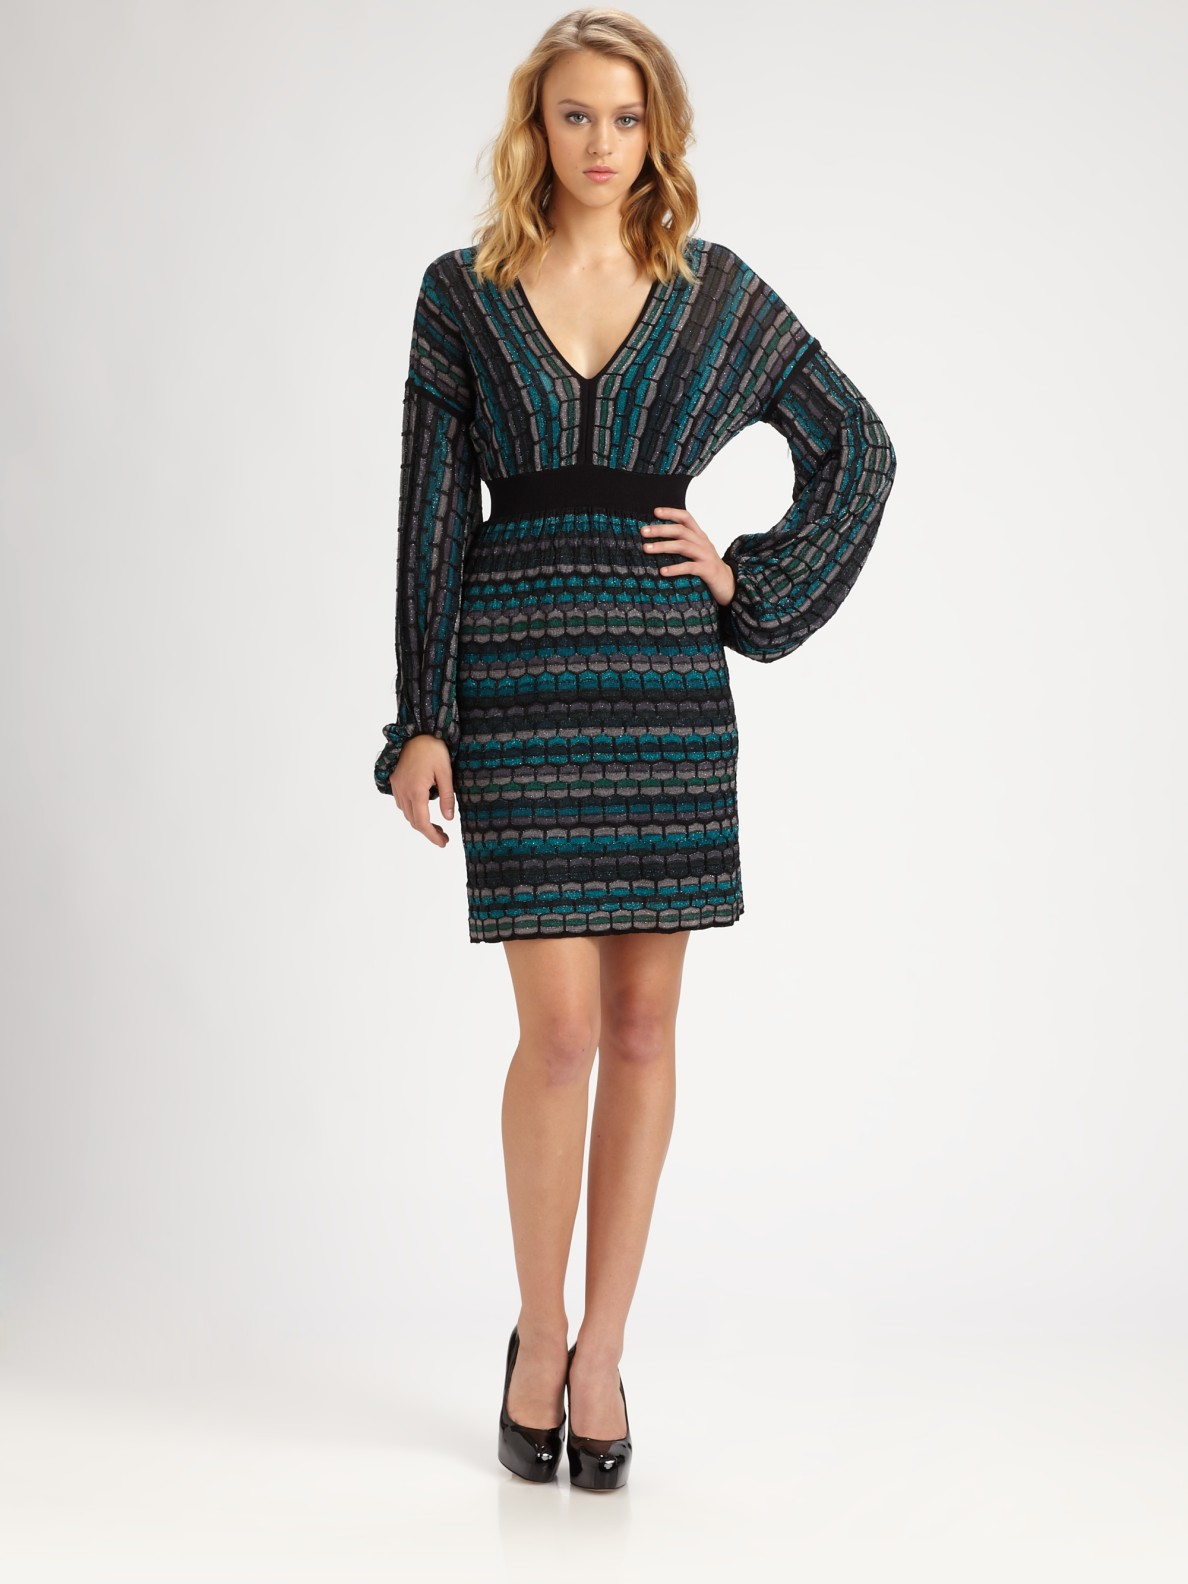 Laundry By Shelli Segal Multistitch Sweater Dress in Green ...